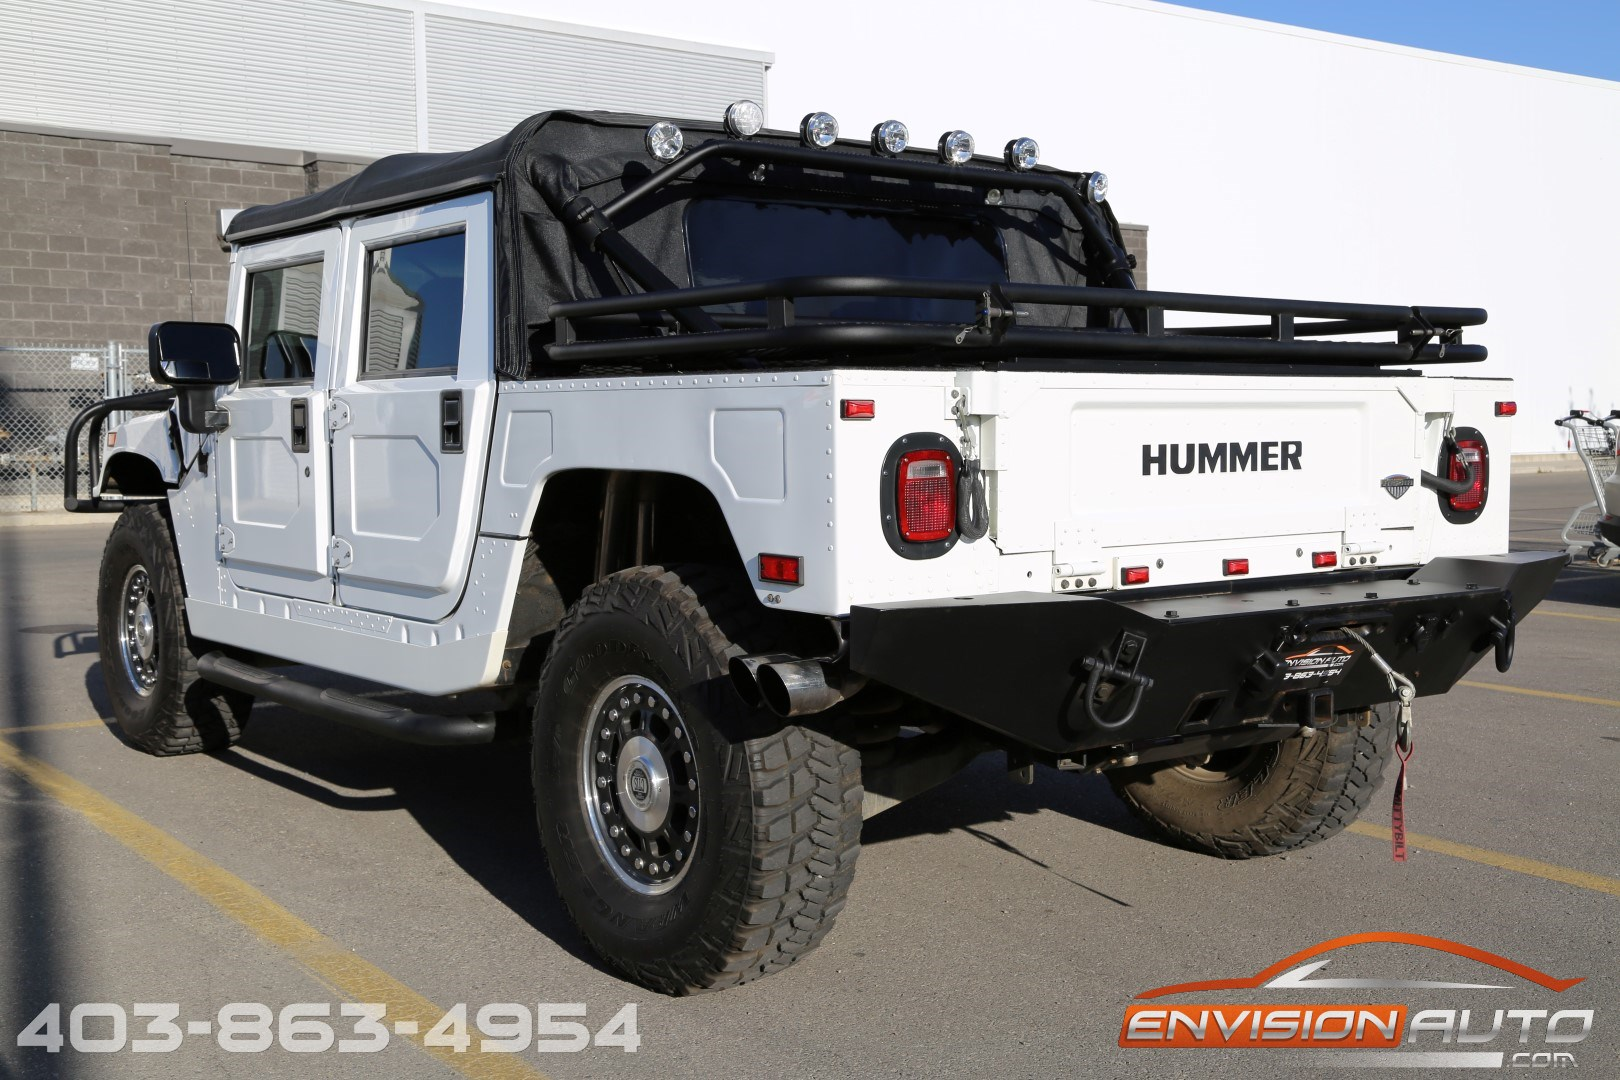 2006 h1 hummer alpha open top 6 6l duramax final year envision auto. Black Bedroom Furniture Sets. Home Design Ideas